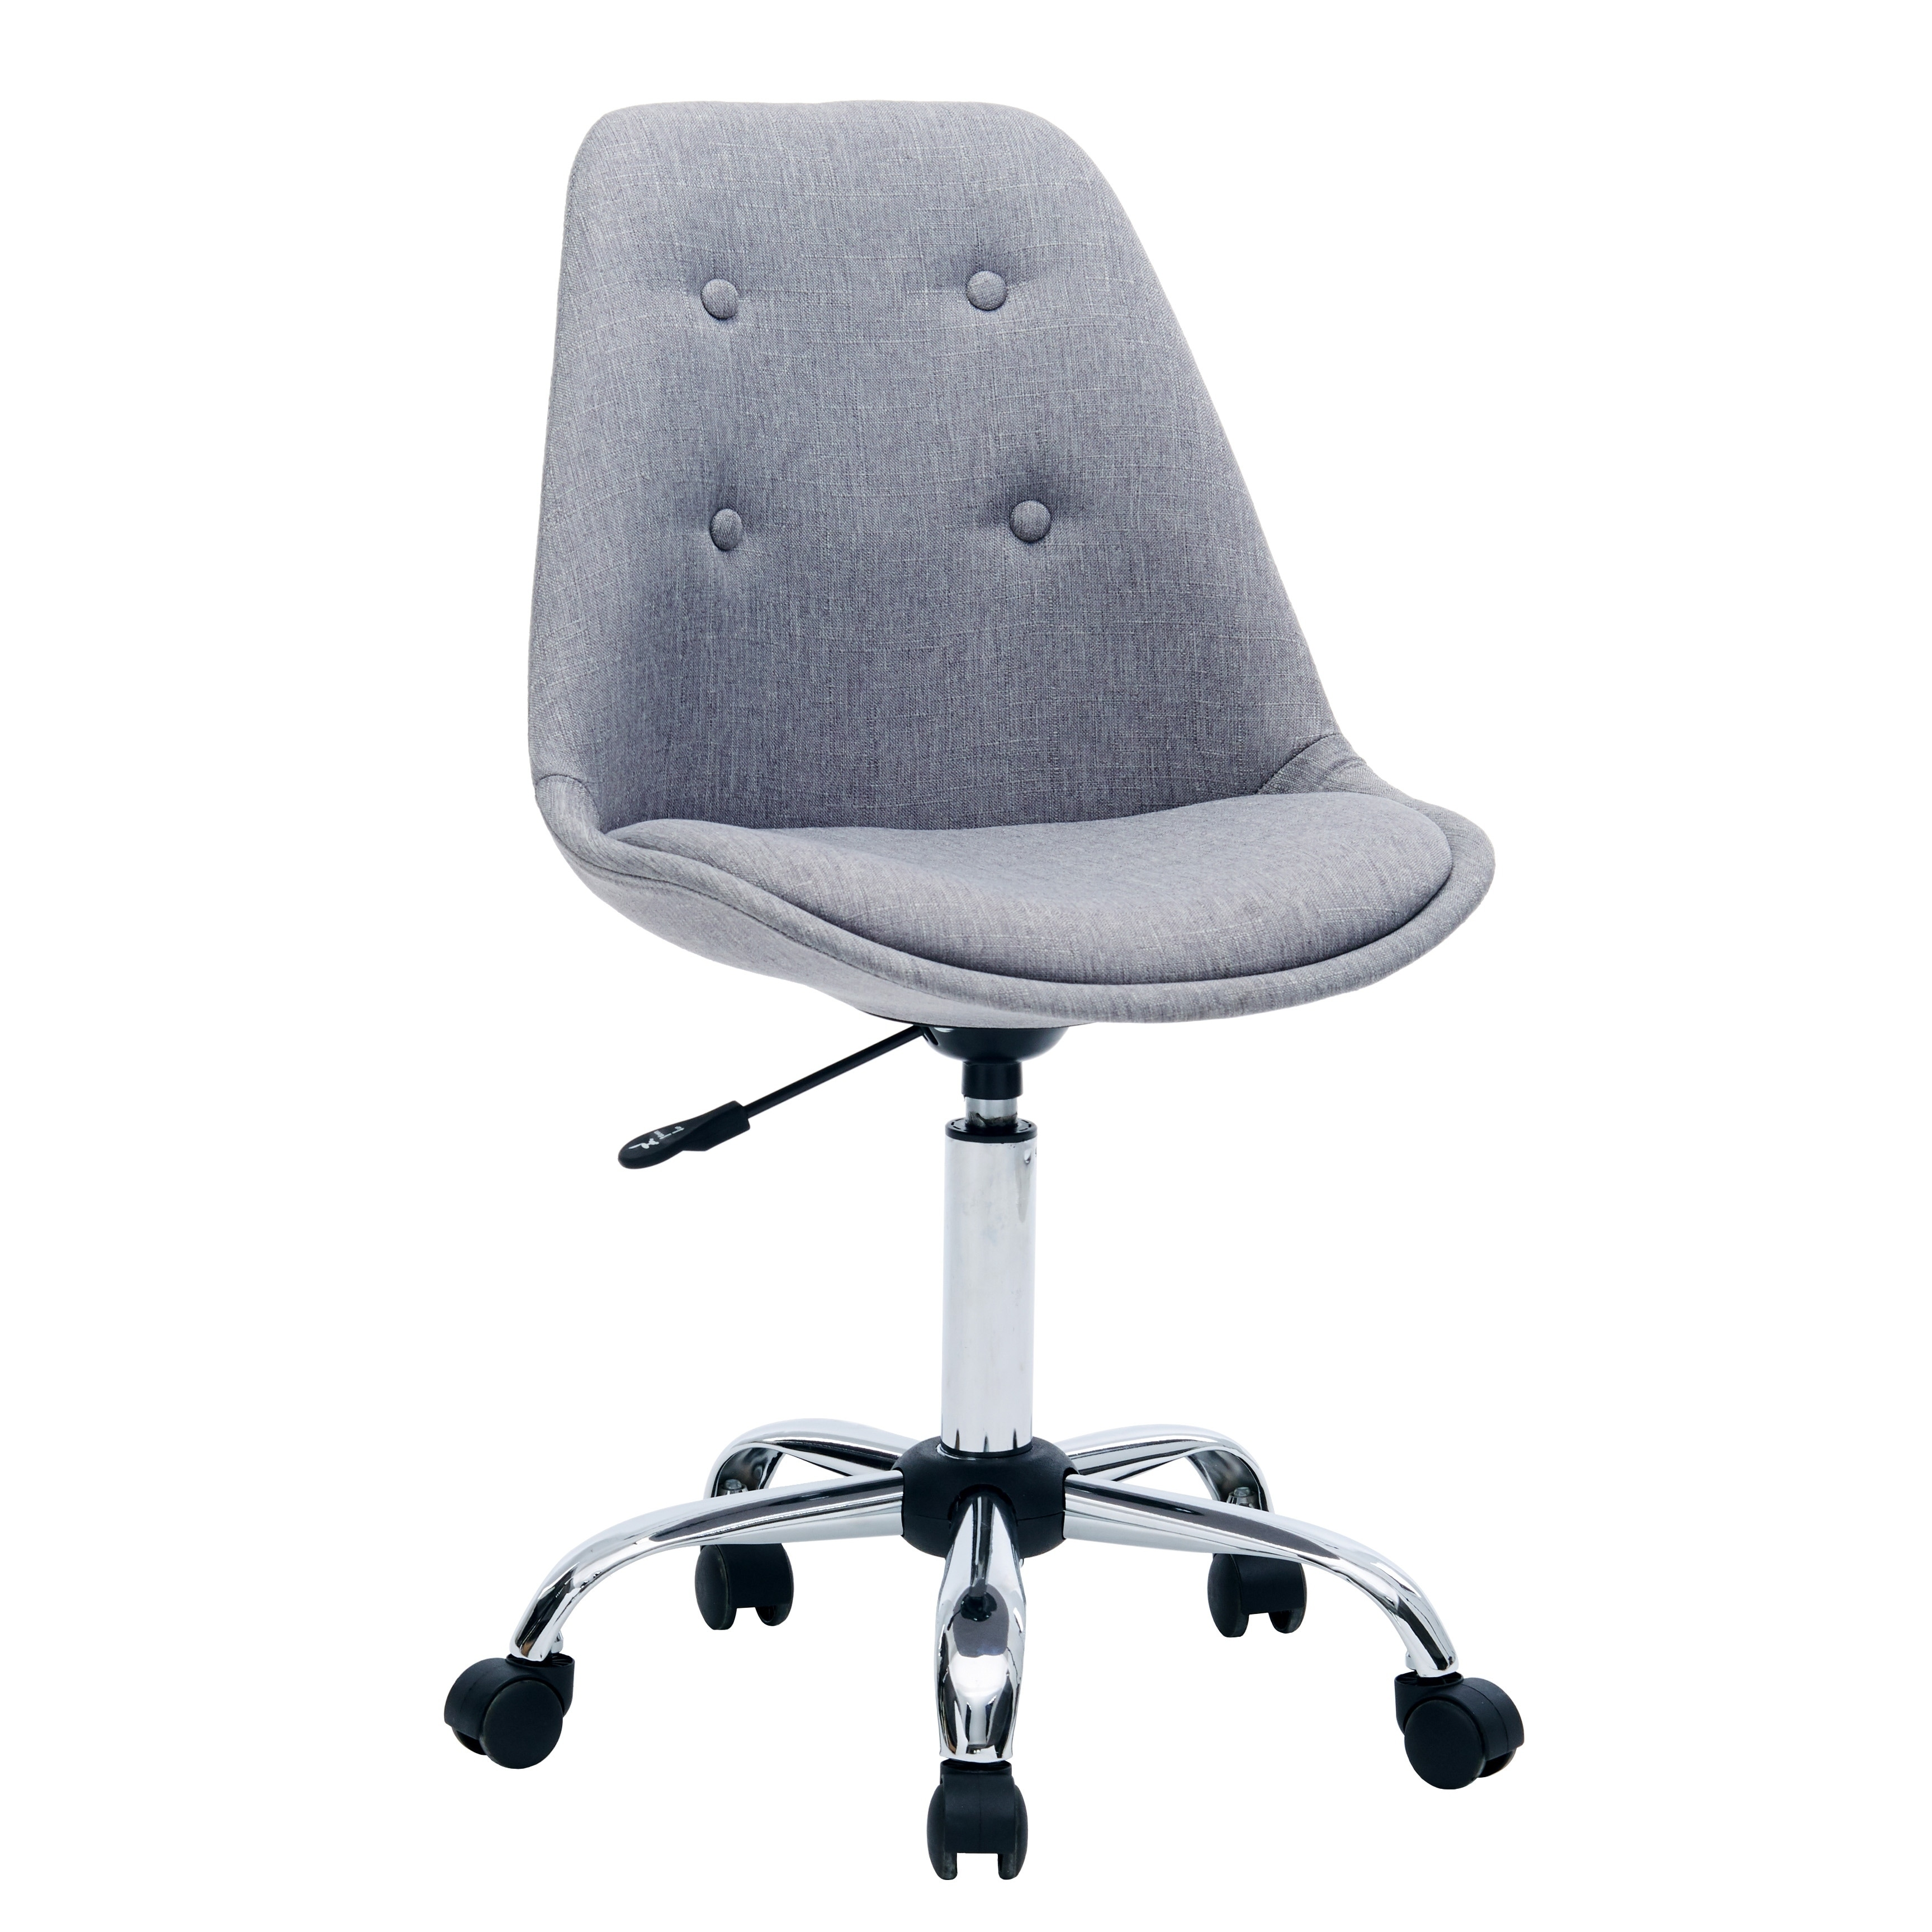 Height Adjustable Chair Porthos Home Office Chair With Height Adjustable Great For Leisure